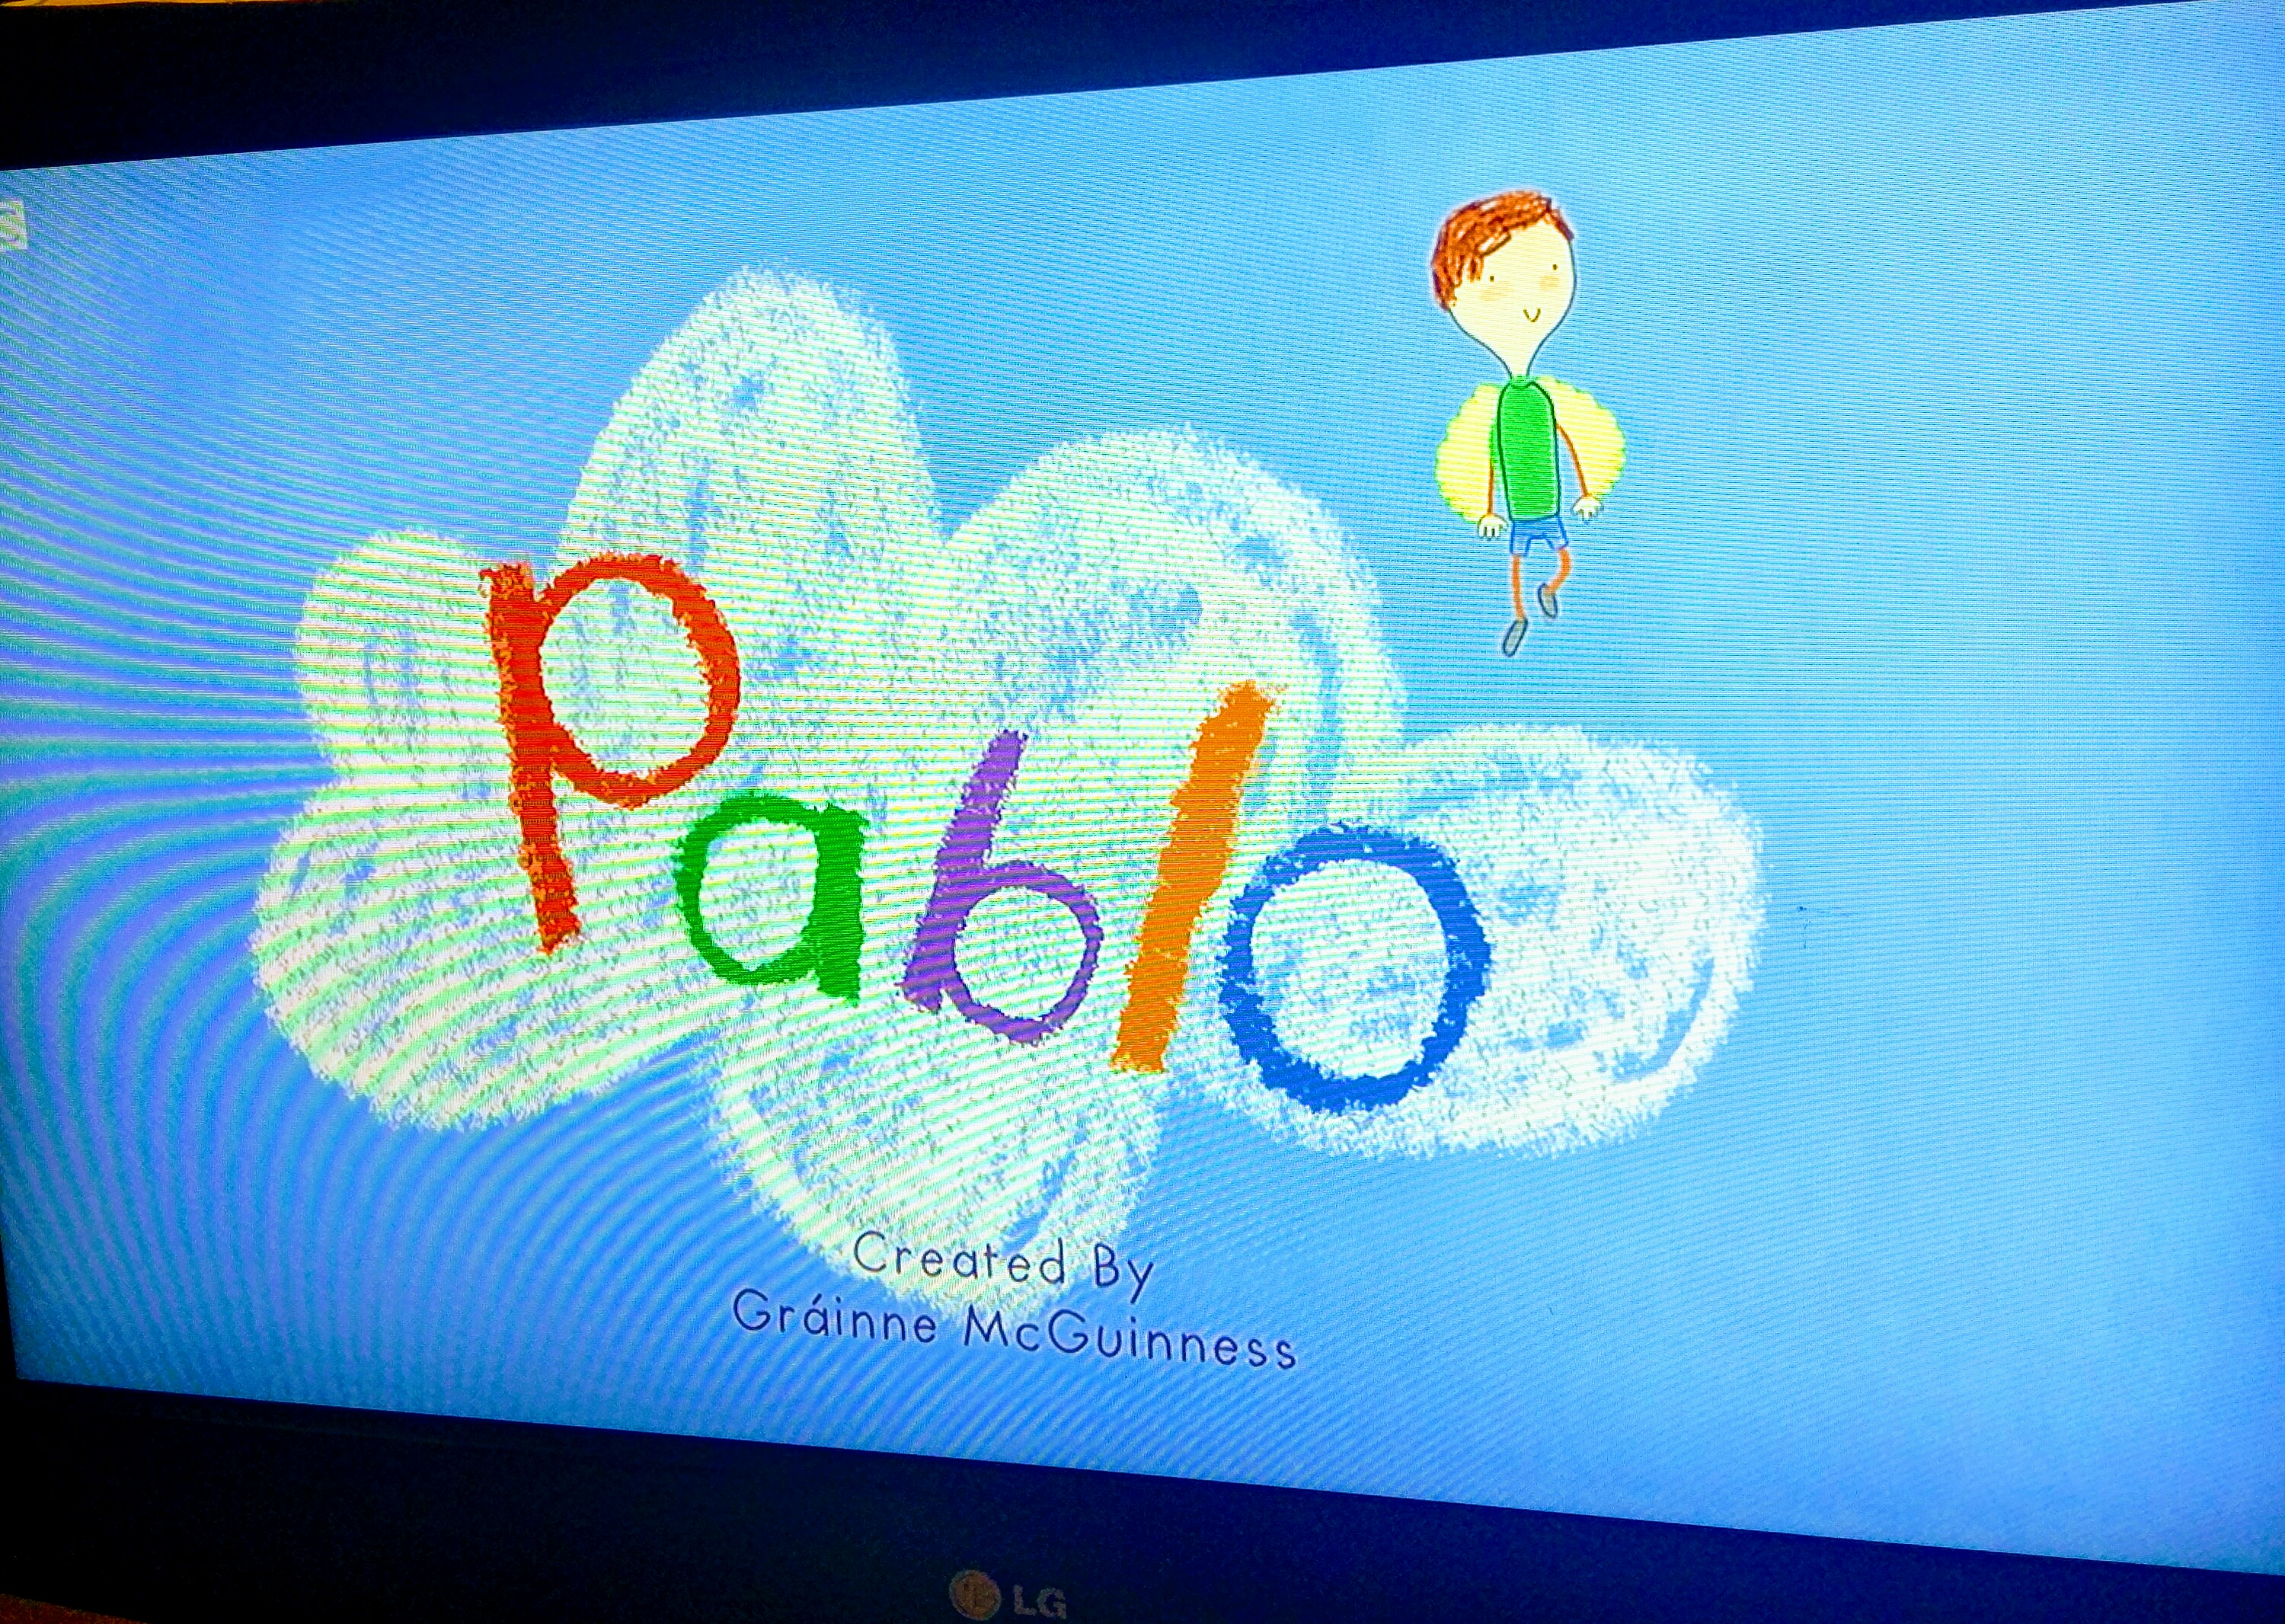 A look at CBeebies new show, Pablo